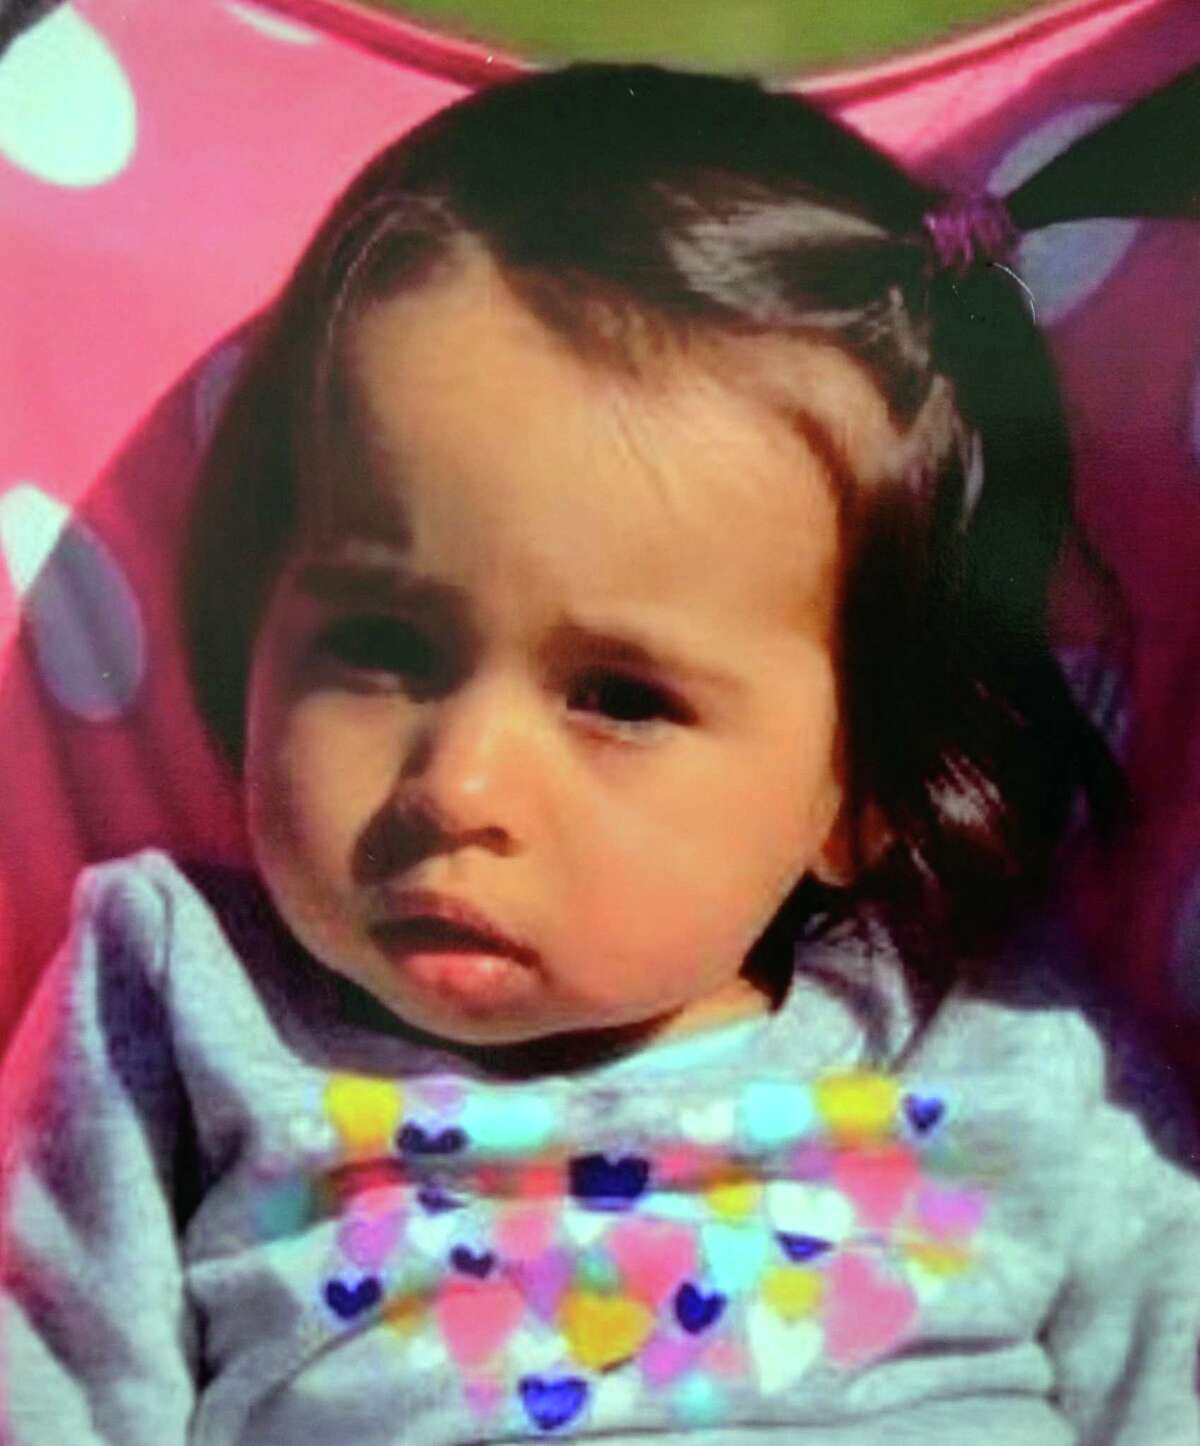 A photo of missing one-year-old Vanessa Morales is released by the Ansonia Police Department during a press conference held at Ansonia City Hall in Ansonia, Conn., on Tuesday Dec. 3, 2019. Morales is missing after the body of a woman police believe is the mother was found deceased at a home on Myrtle Avenue.